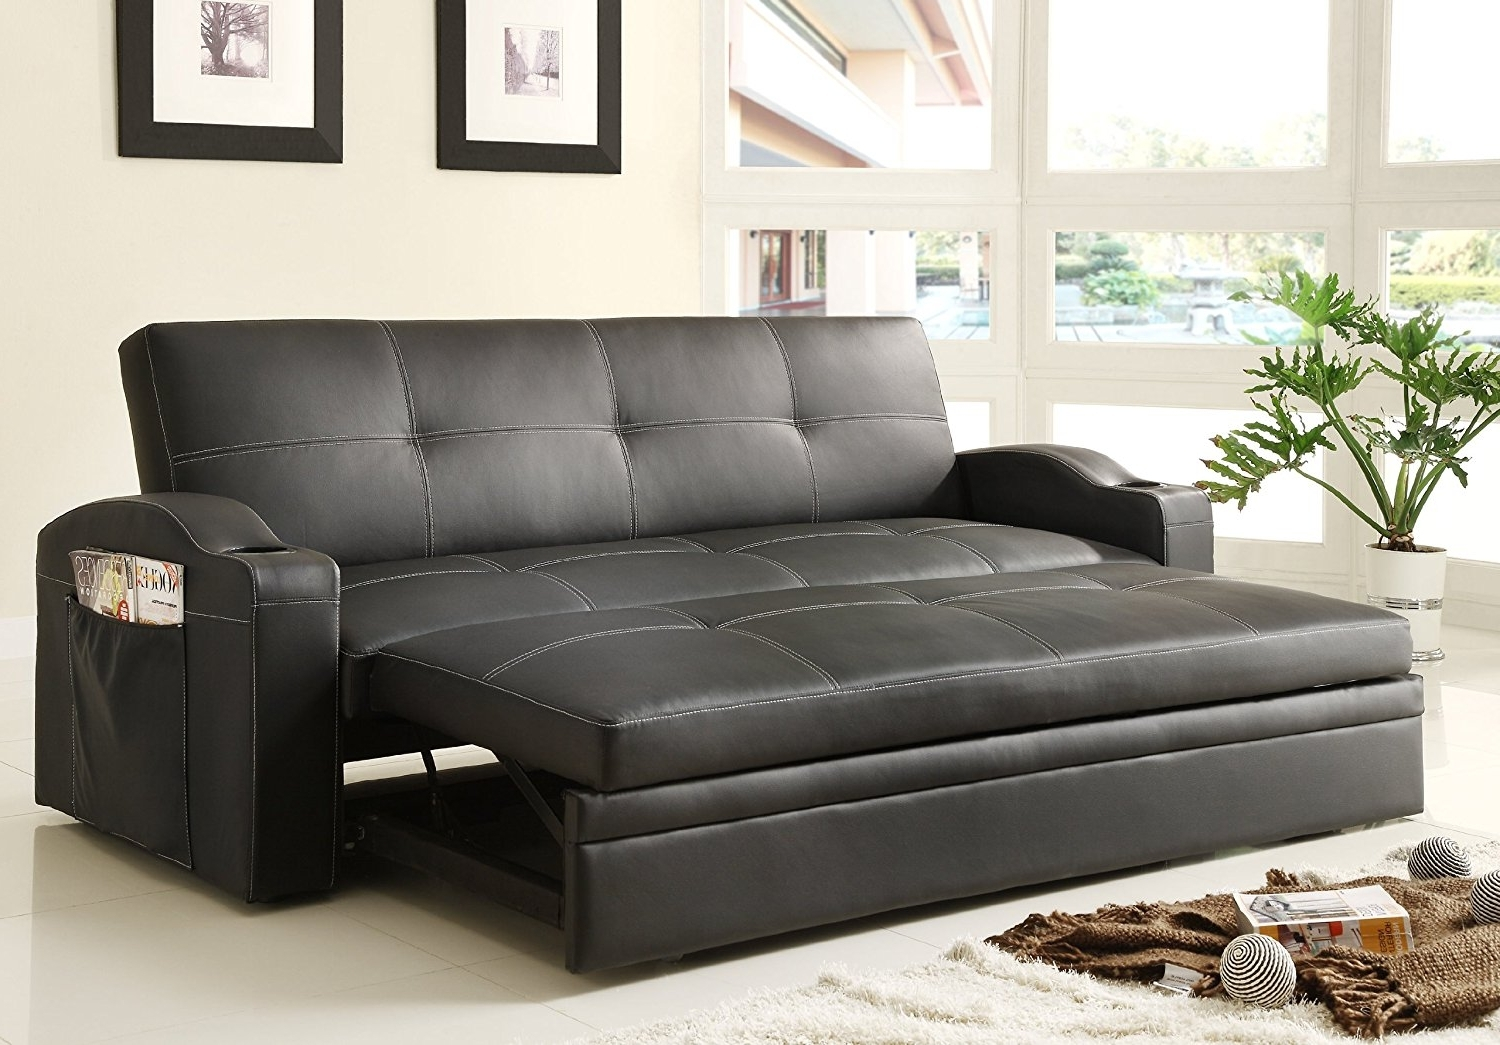 Convertible Sofa Design Ideas — Cabinets, Beds, Sofas And For Favorite Convertible Sofas (View 19 of 20)